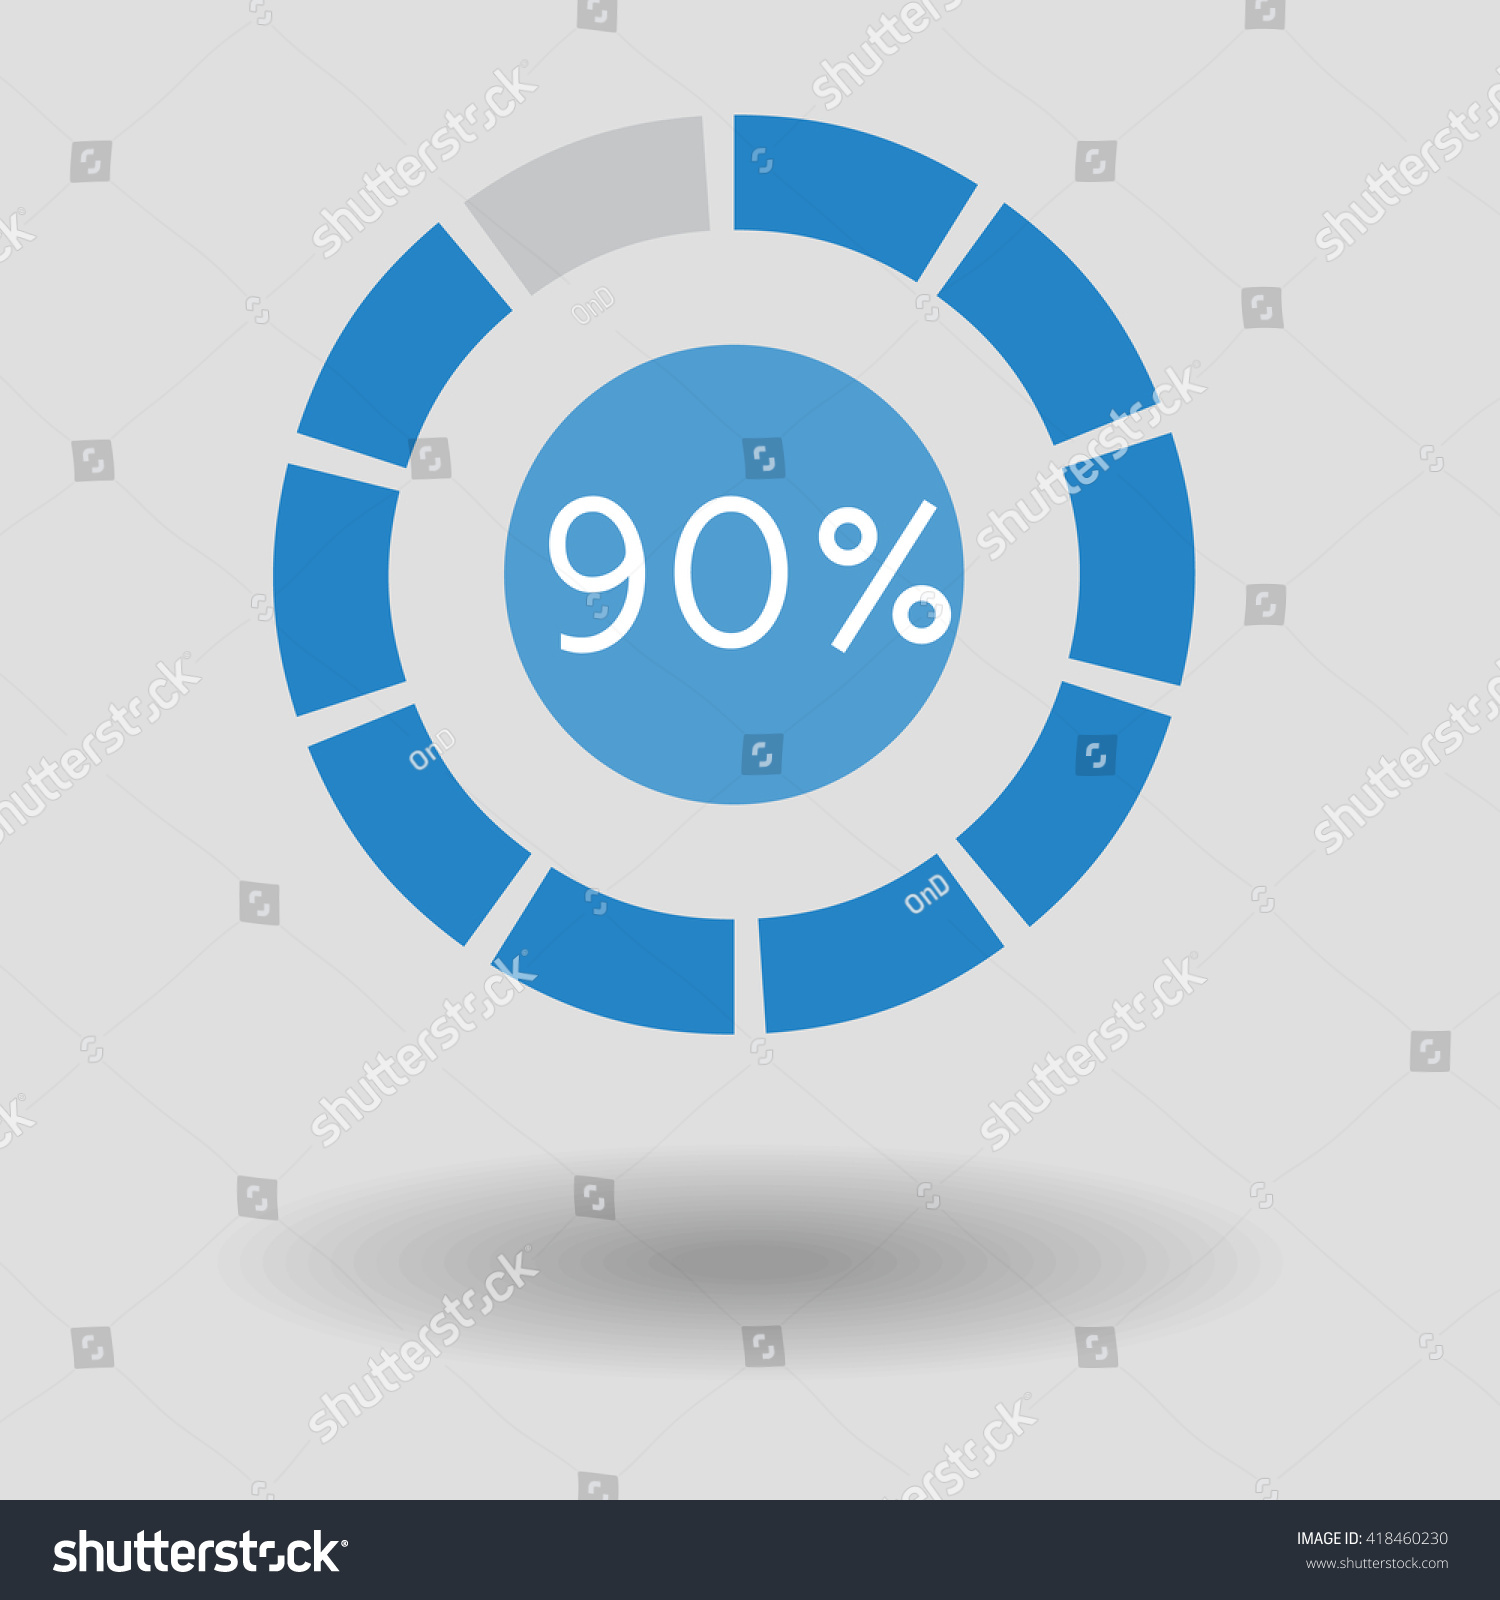 Icon Business Colorful Pie Chart Circle Stock Vector Royalty Free